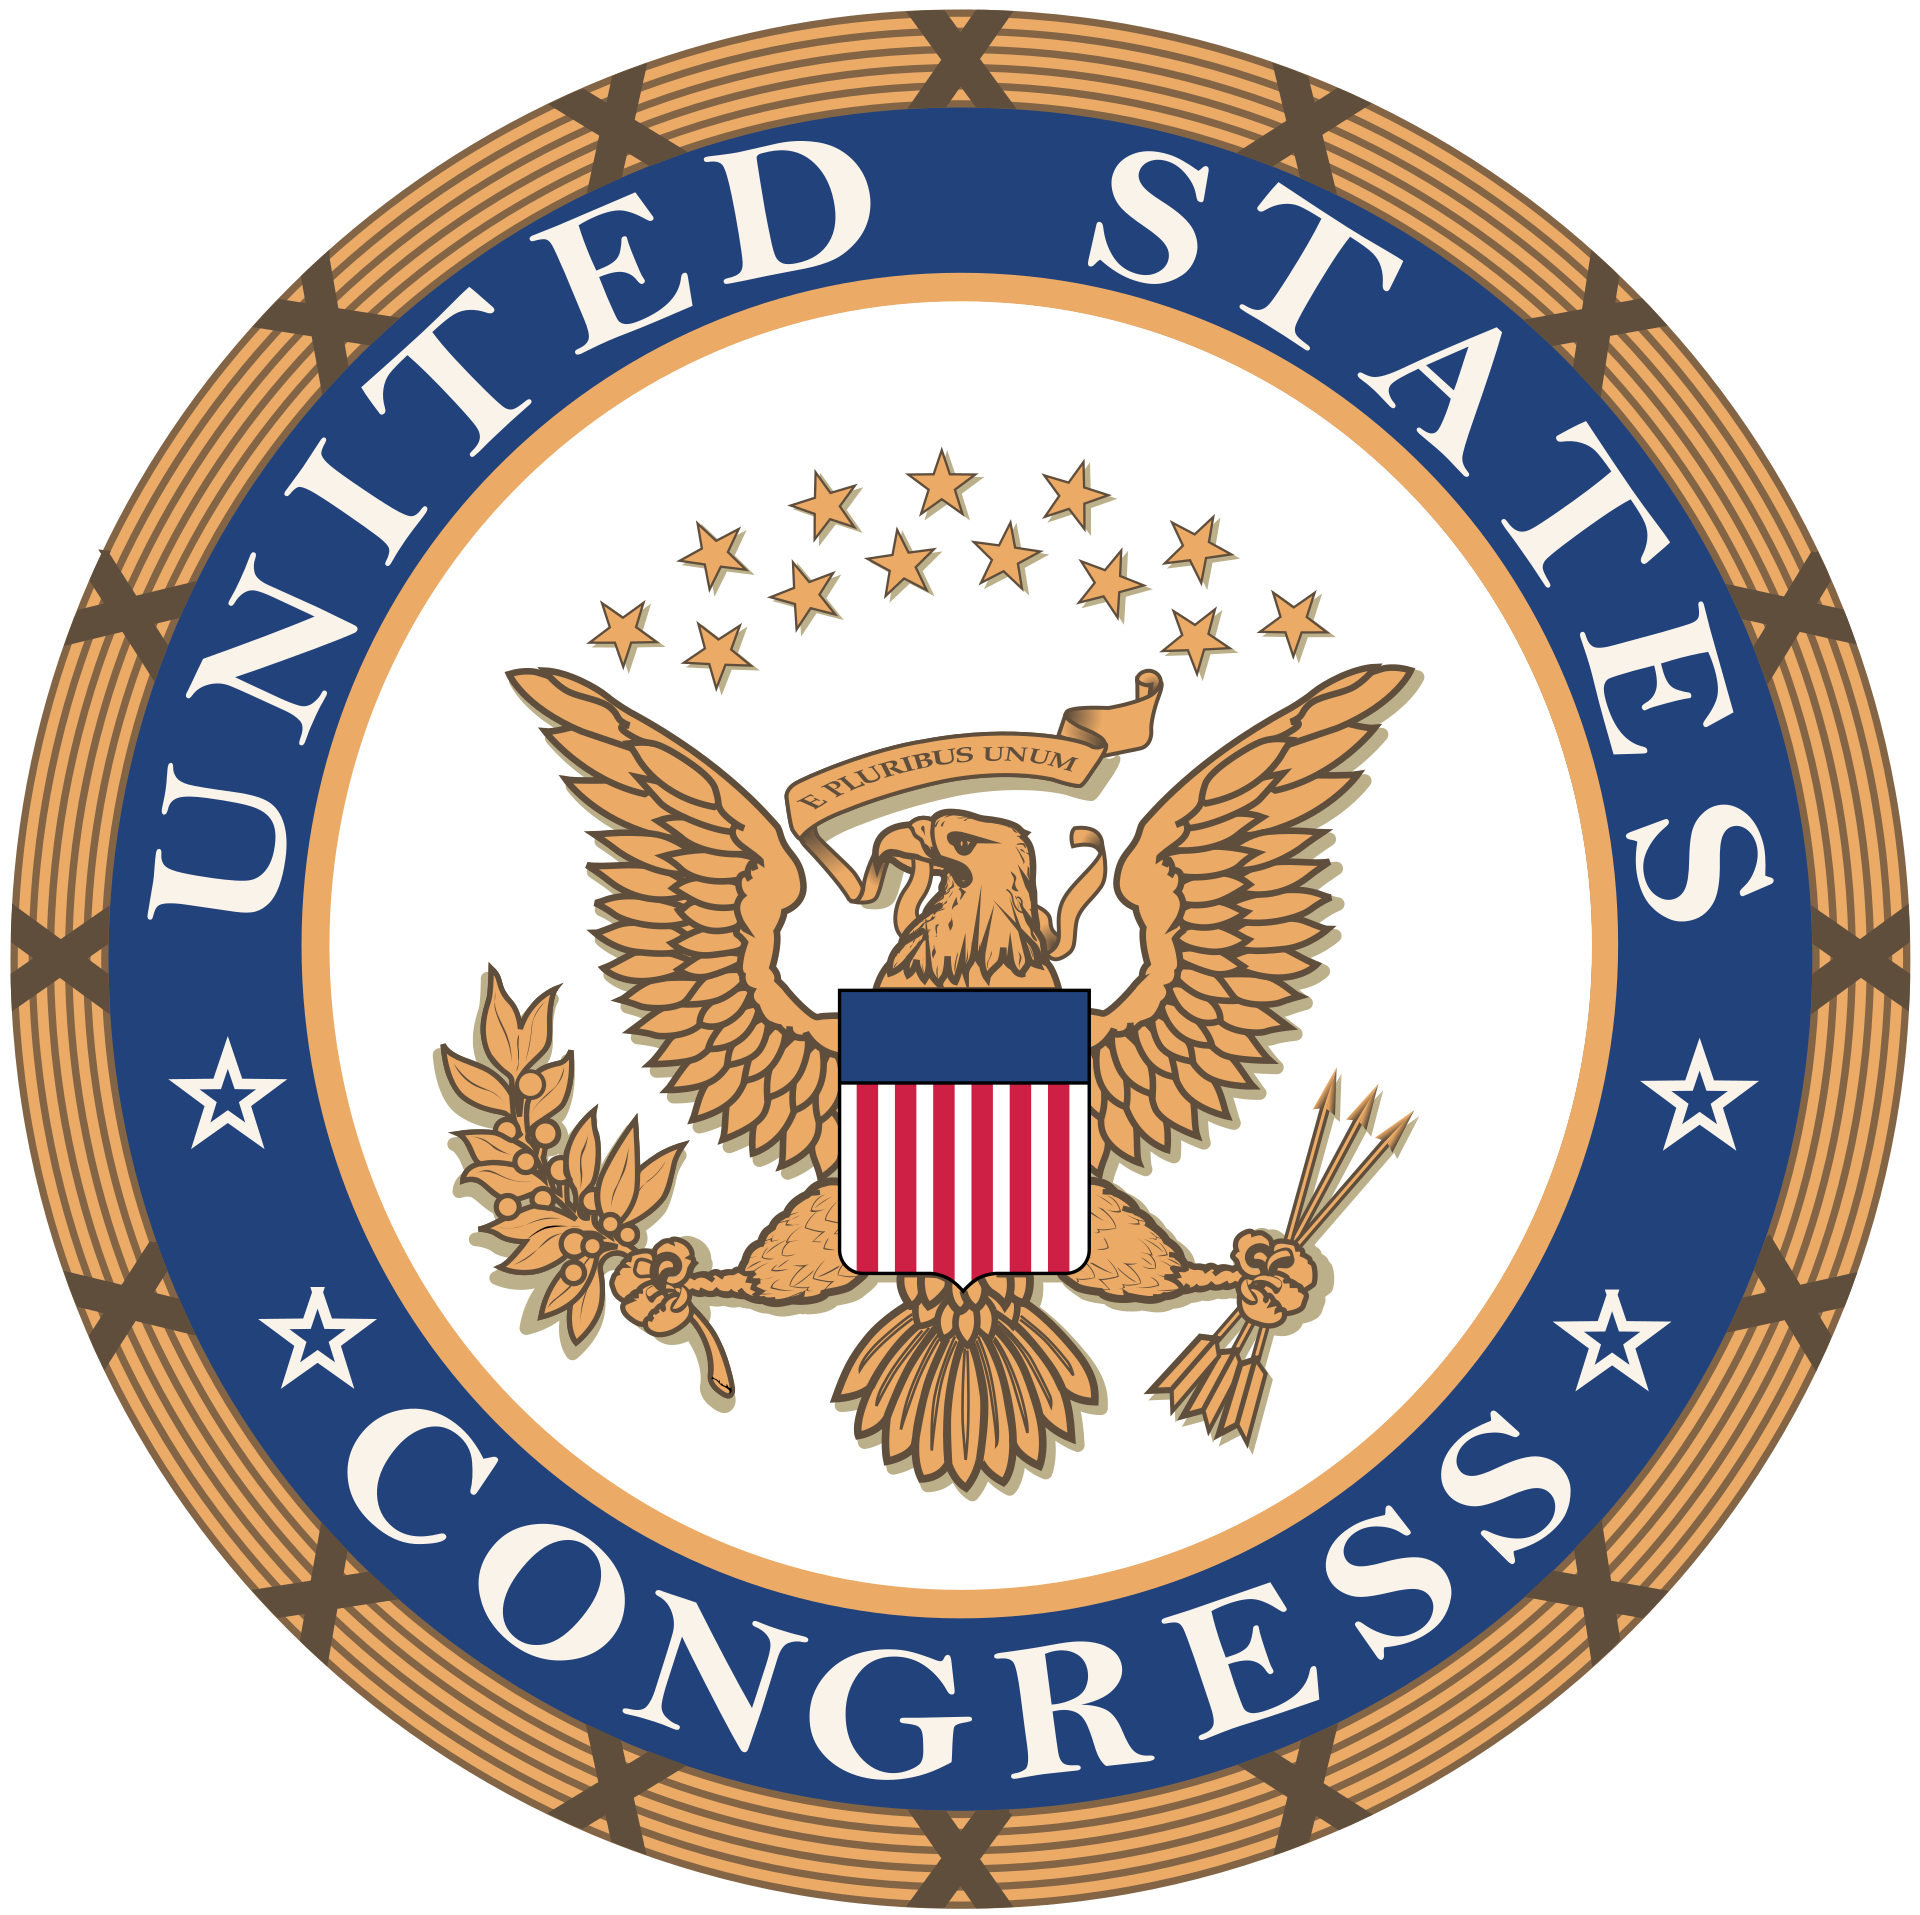 Register For The March 19 COVID-19 Update From Senator Dick Durbin